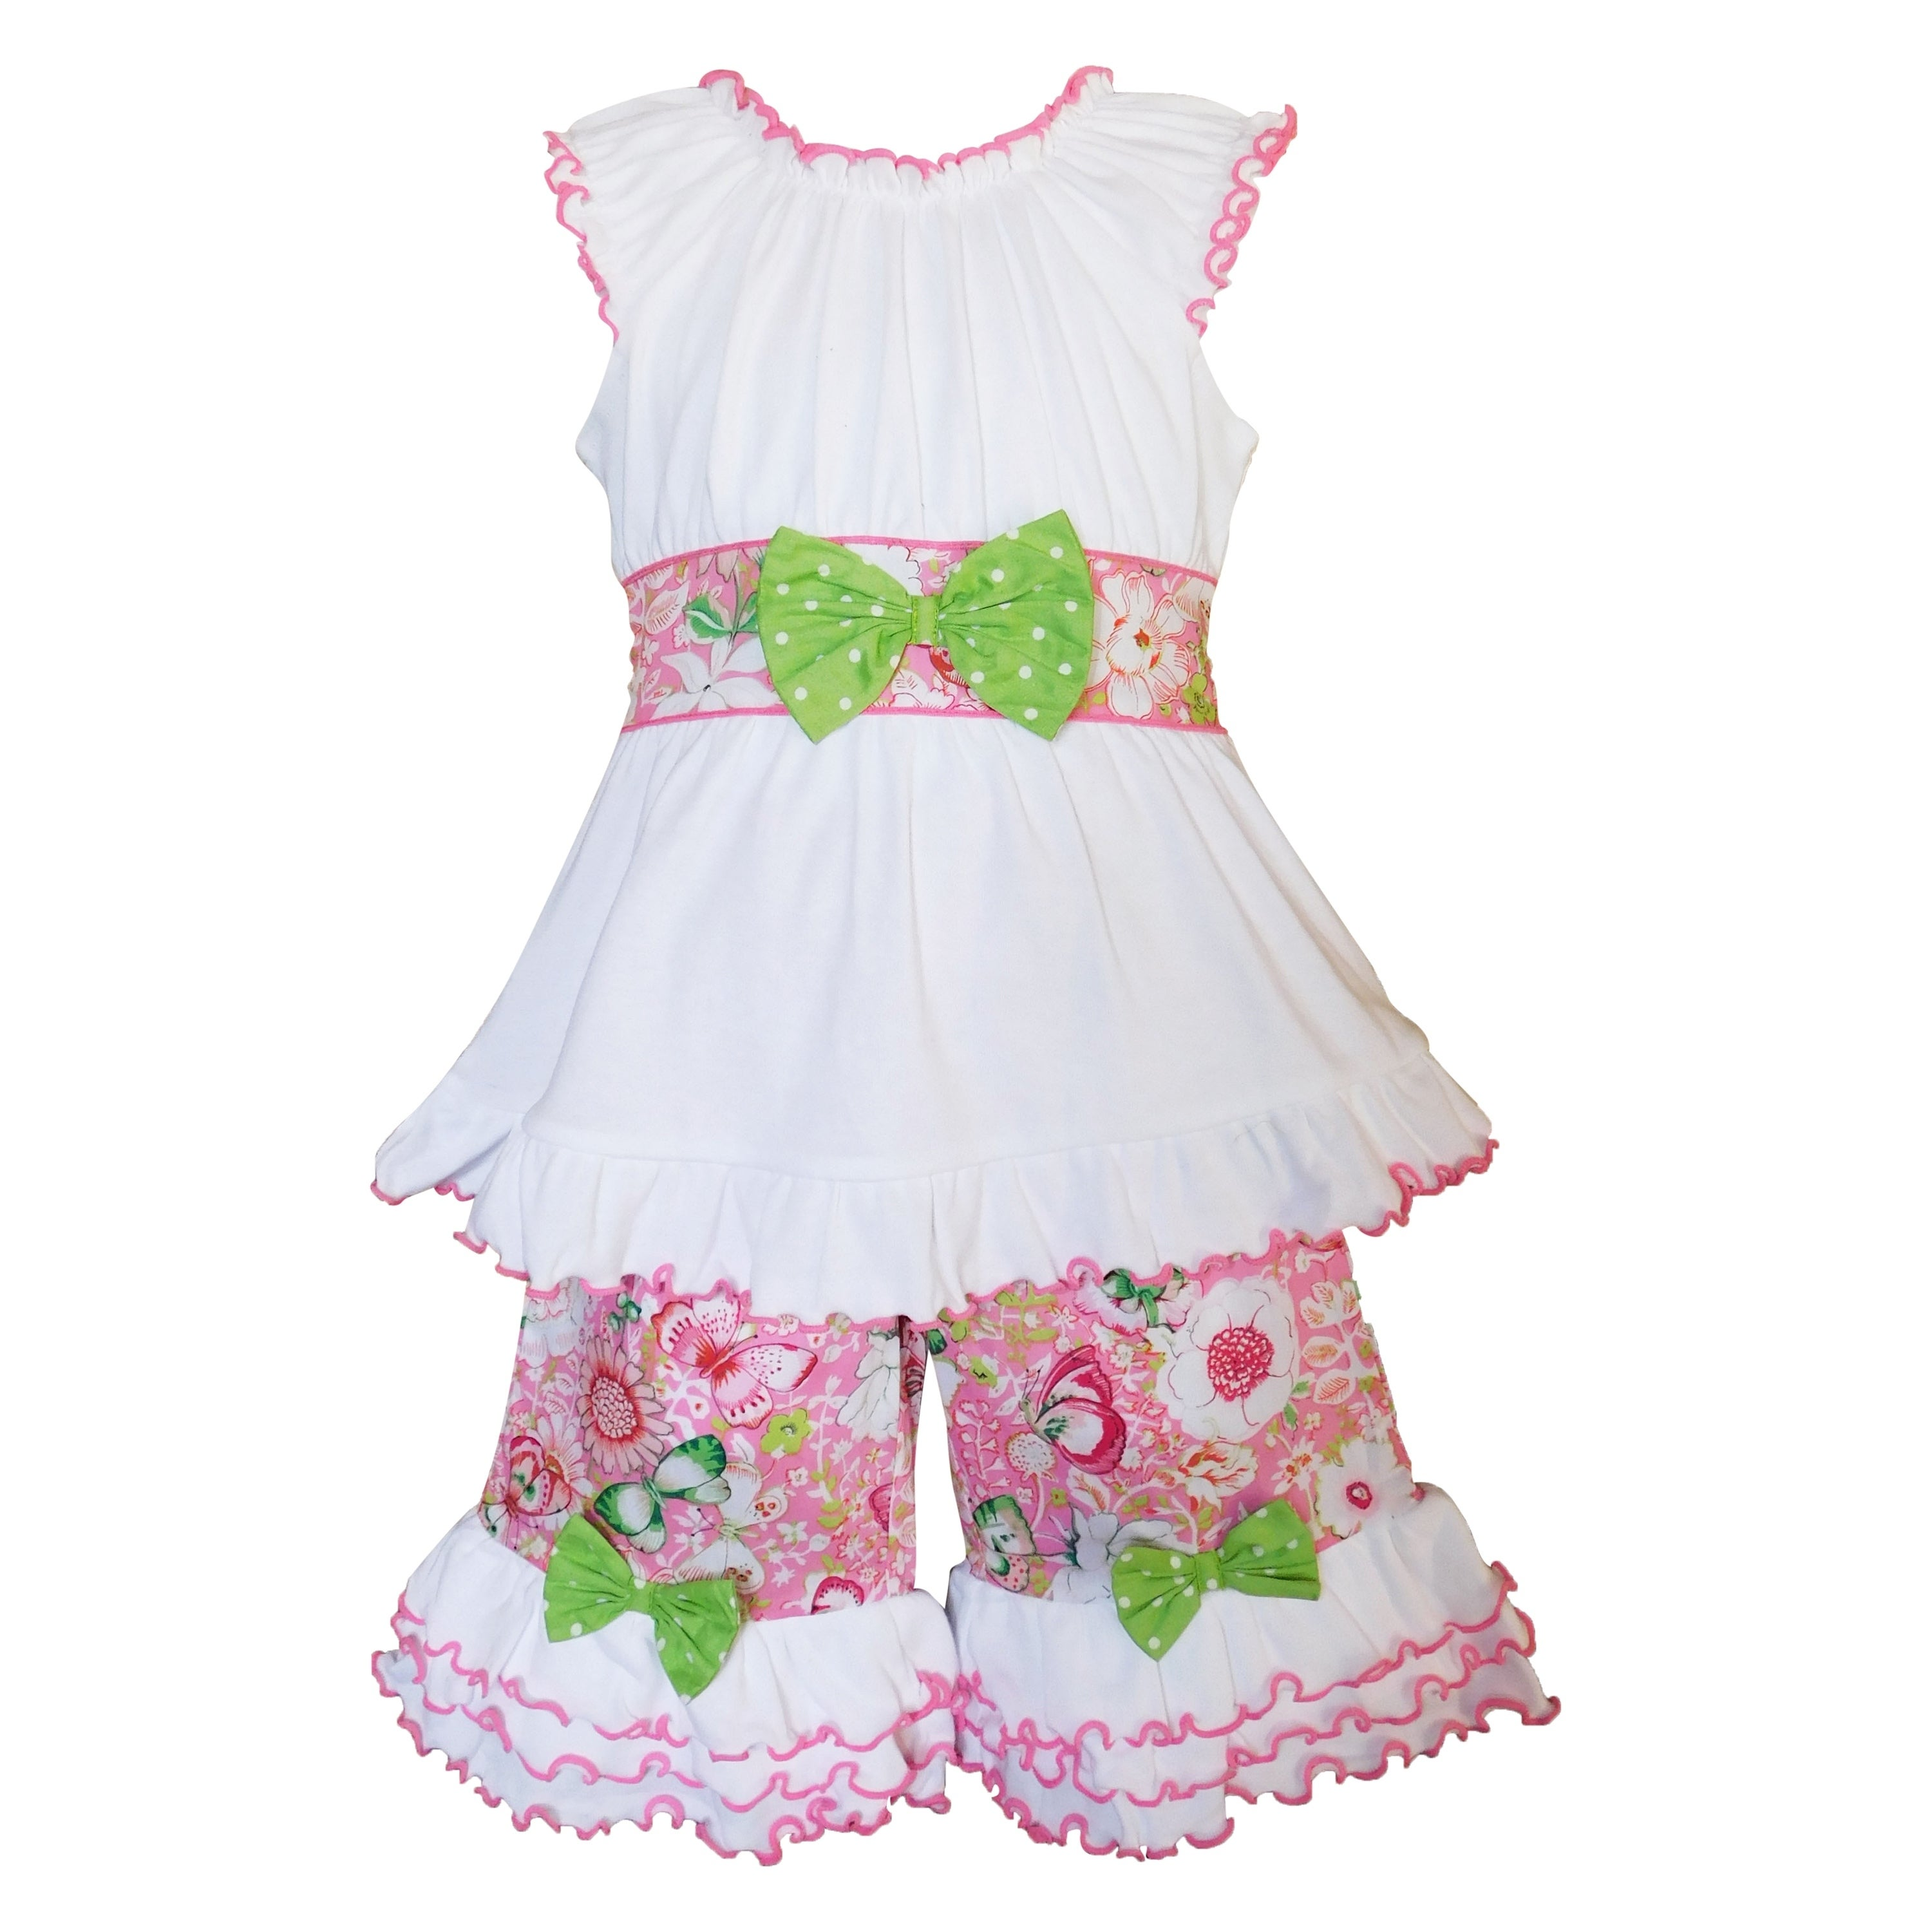 e40826a5f Ann Loren Children s Clothing